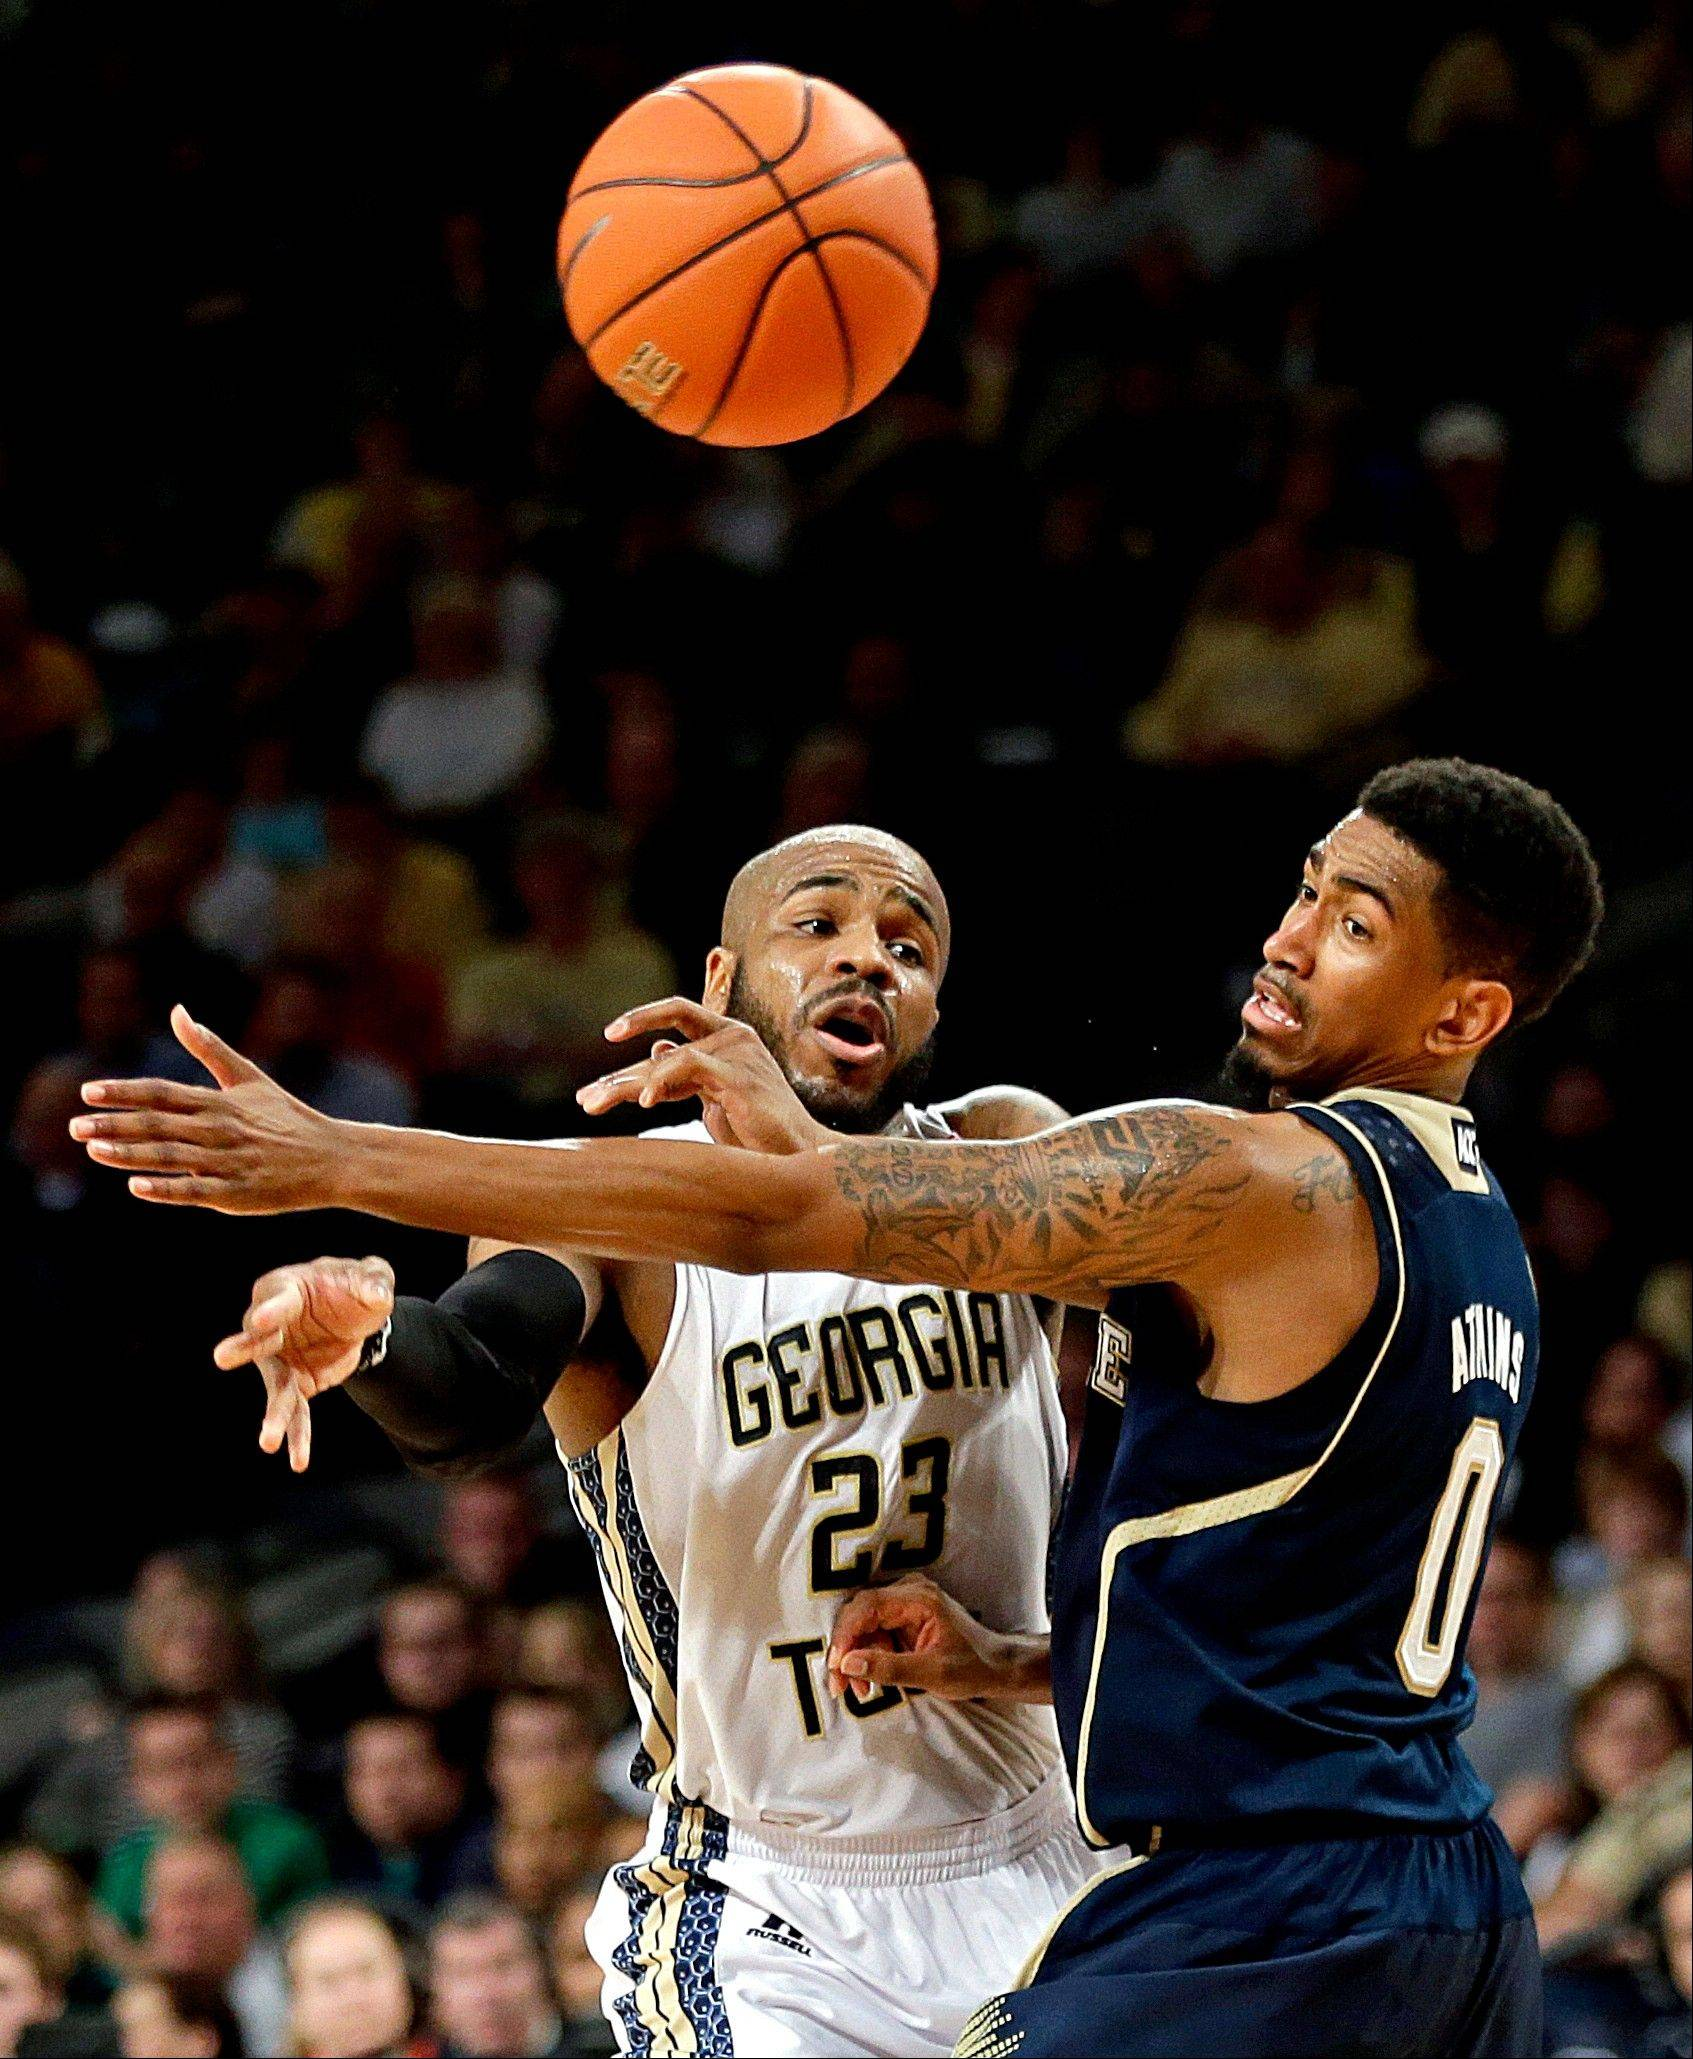 Georgia Tech's Trae Golden, left, passes the ball against the defense of Notre Dame's Eric Atkins in the second half of an NCAA college basketball game, Saturday, Jan. 11, 2014, in Atlanta. Georgia Tech won 74-69. (AP Photo/David Goldman)